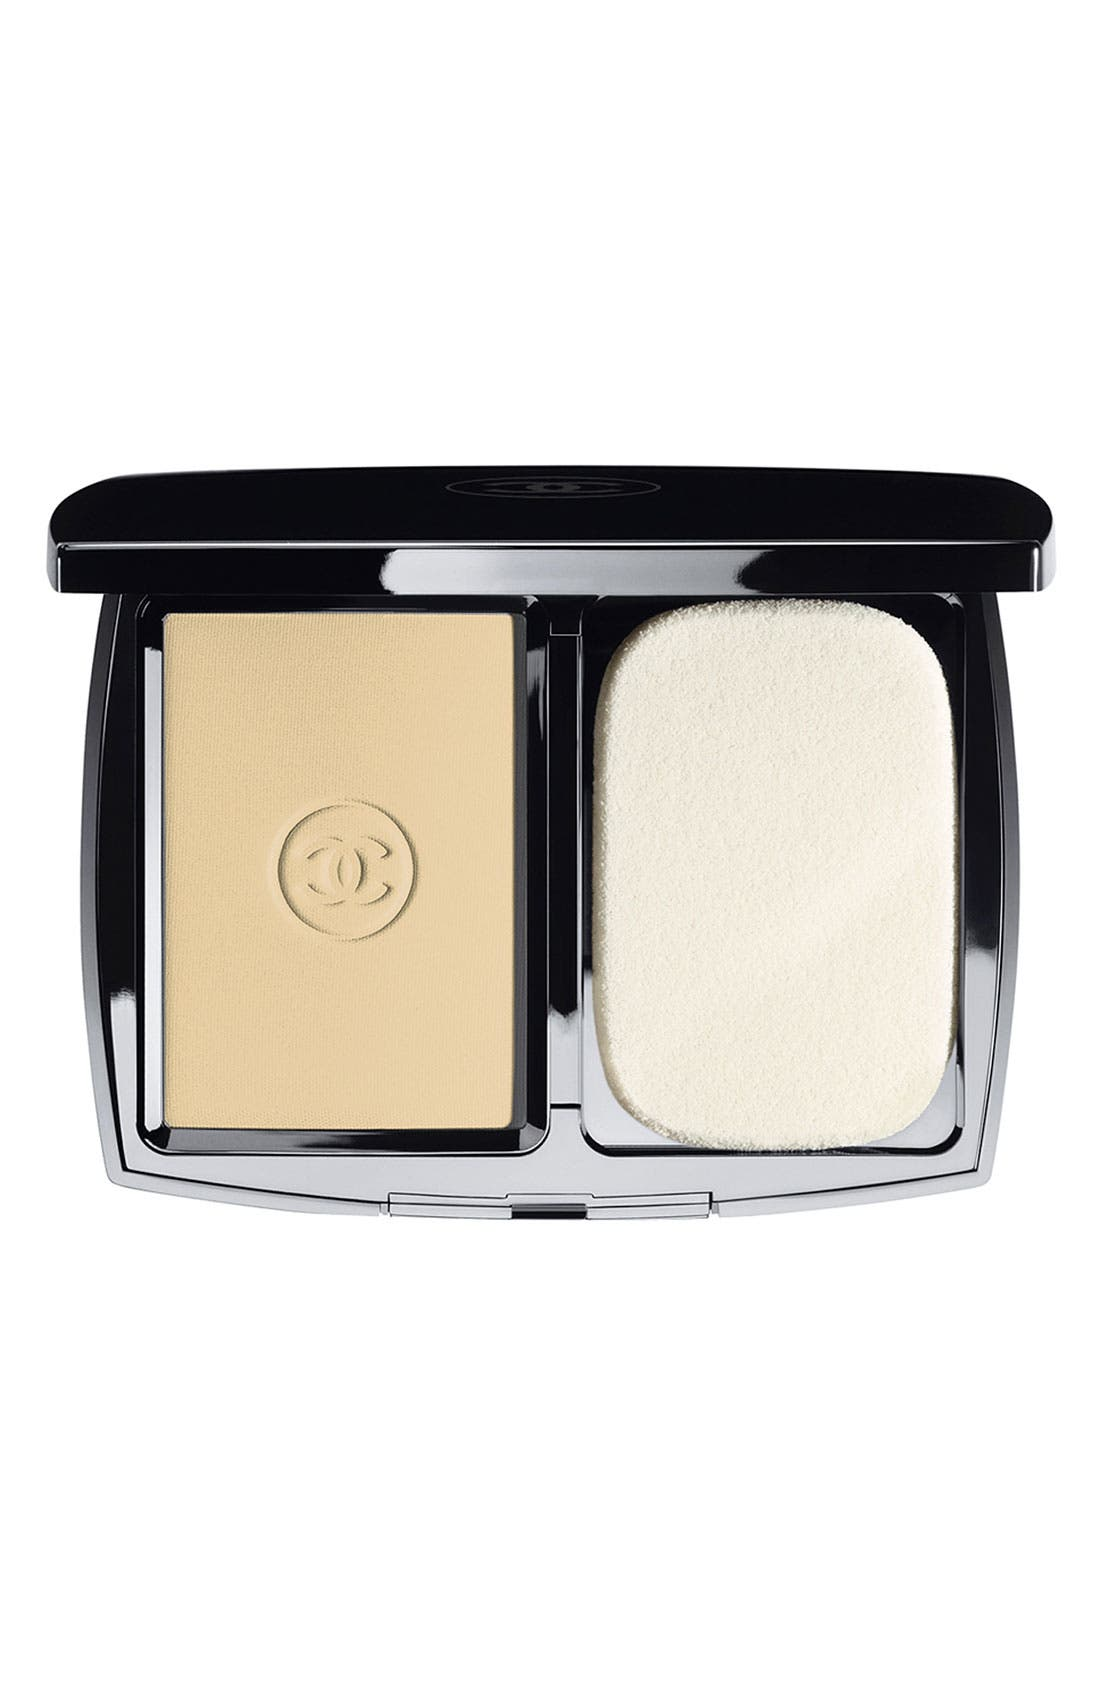 DOUBLE PERFECTION LUMIÈRE<br />Long-Wear Flawless Sunscreen Powder Makeup Broad Spectrum SPF 15,                             Main thumbnail 10, color,